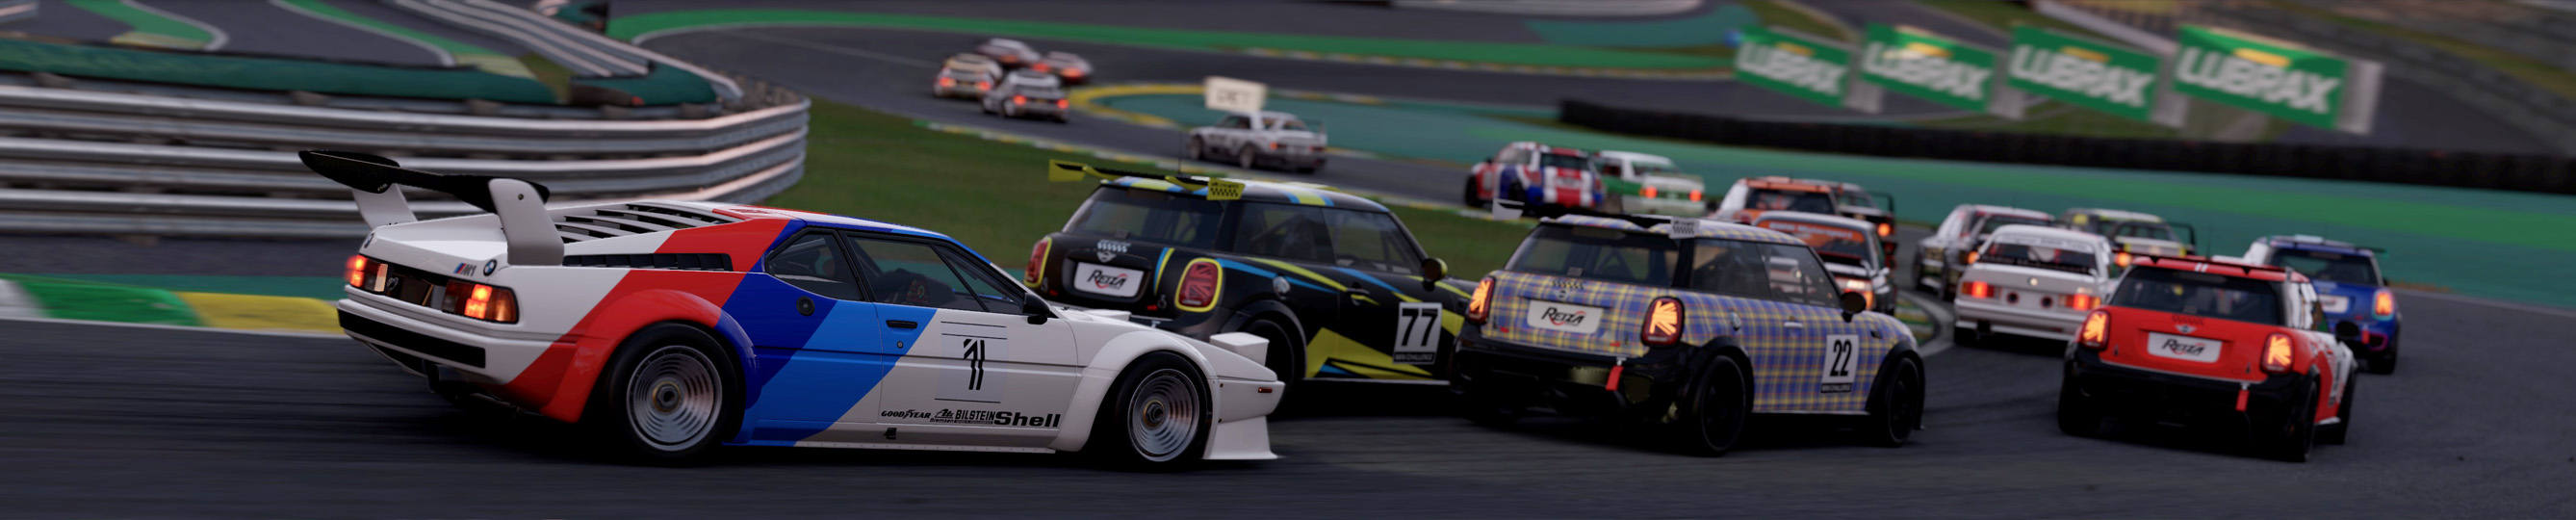 0 AMS2 MINI & BMW at INTERLAGOS crop copy.jpg